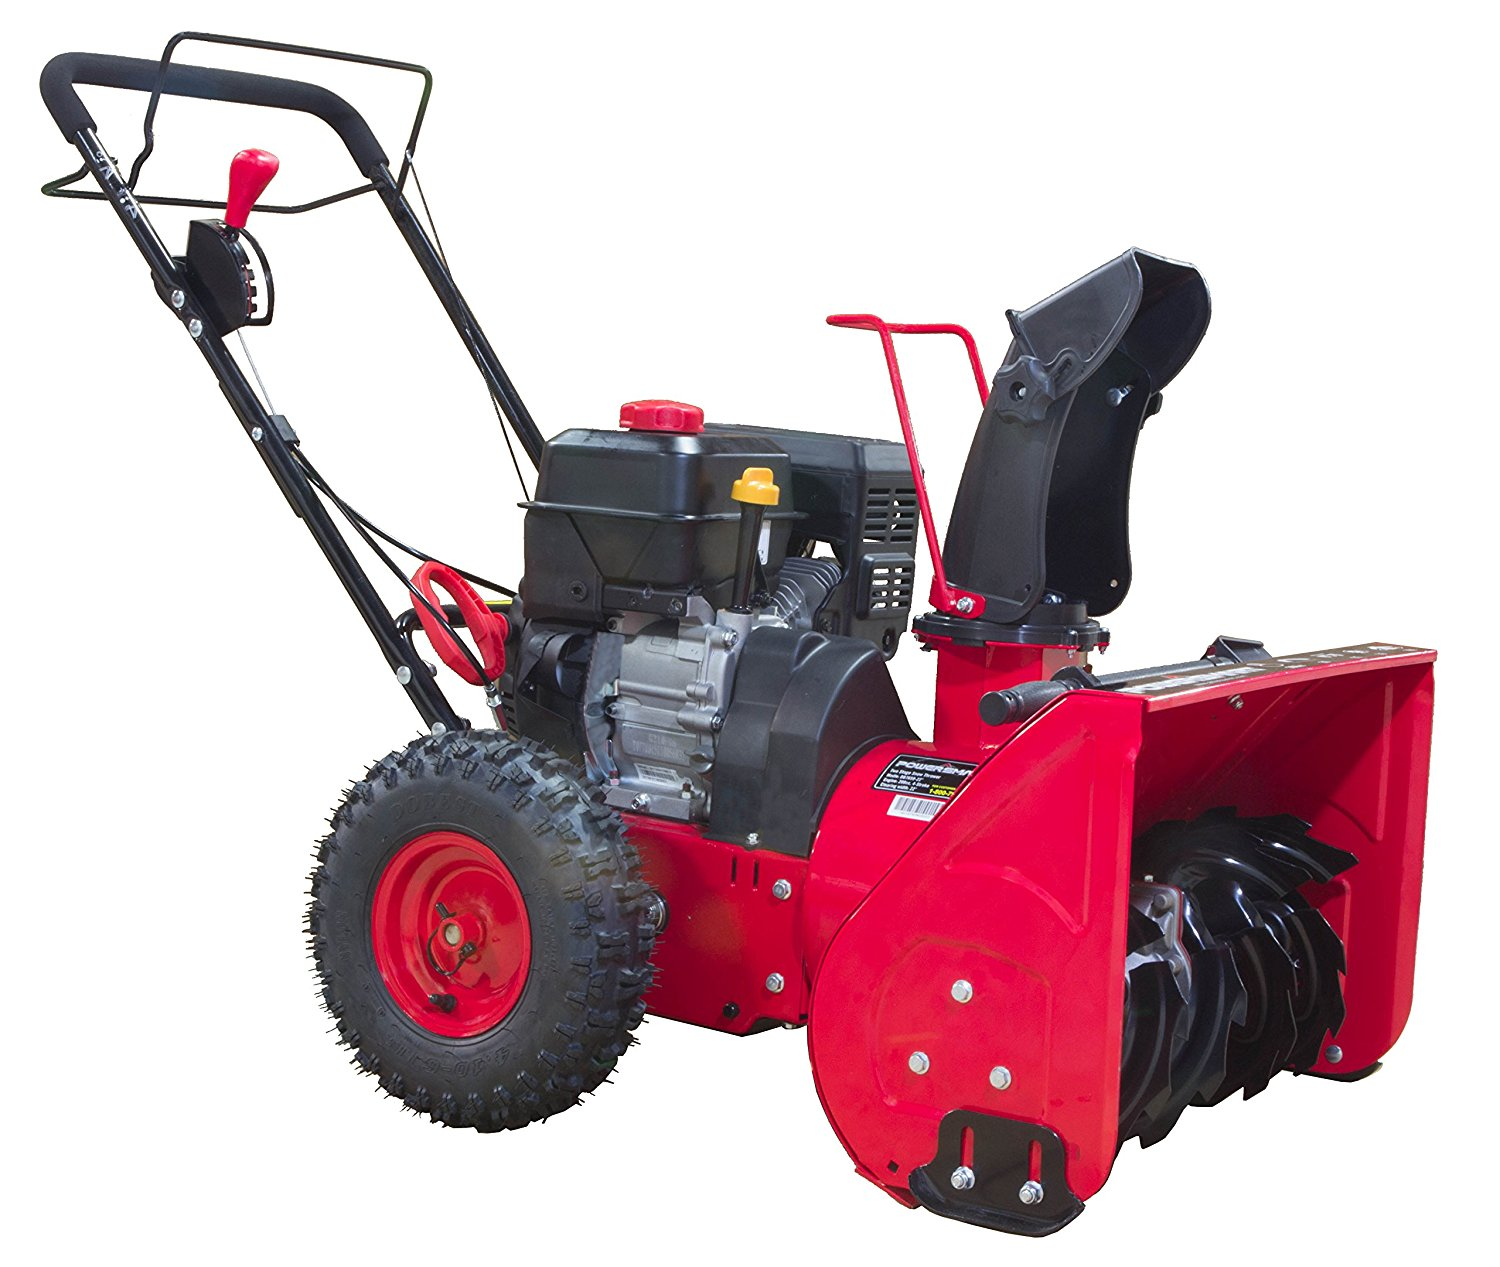 Power Smart Snow Blower Reviews